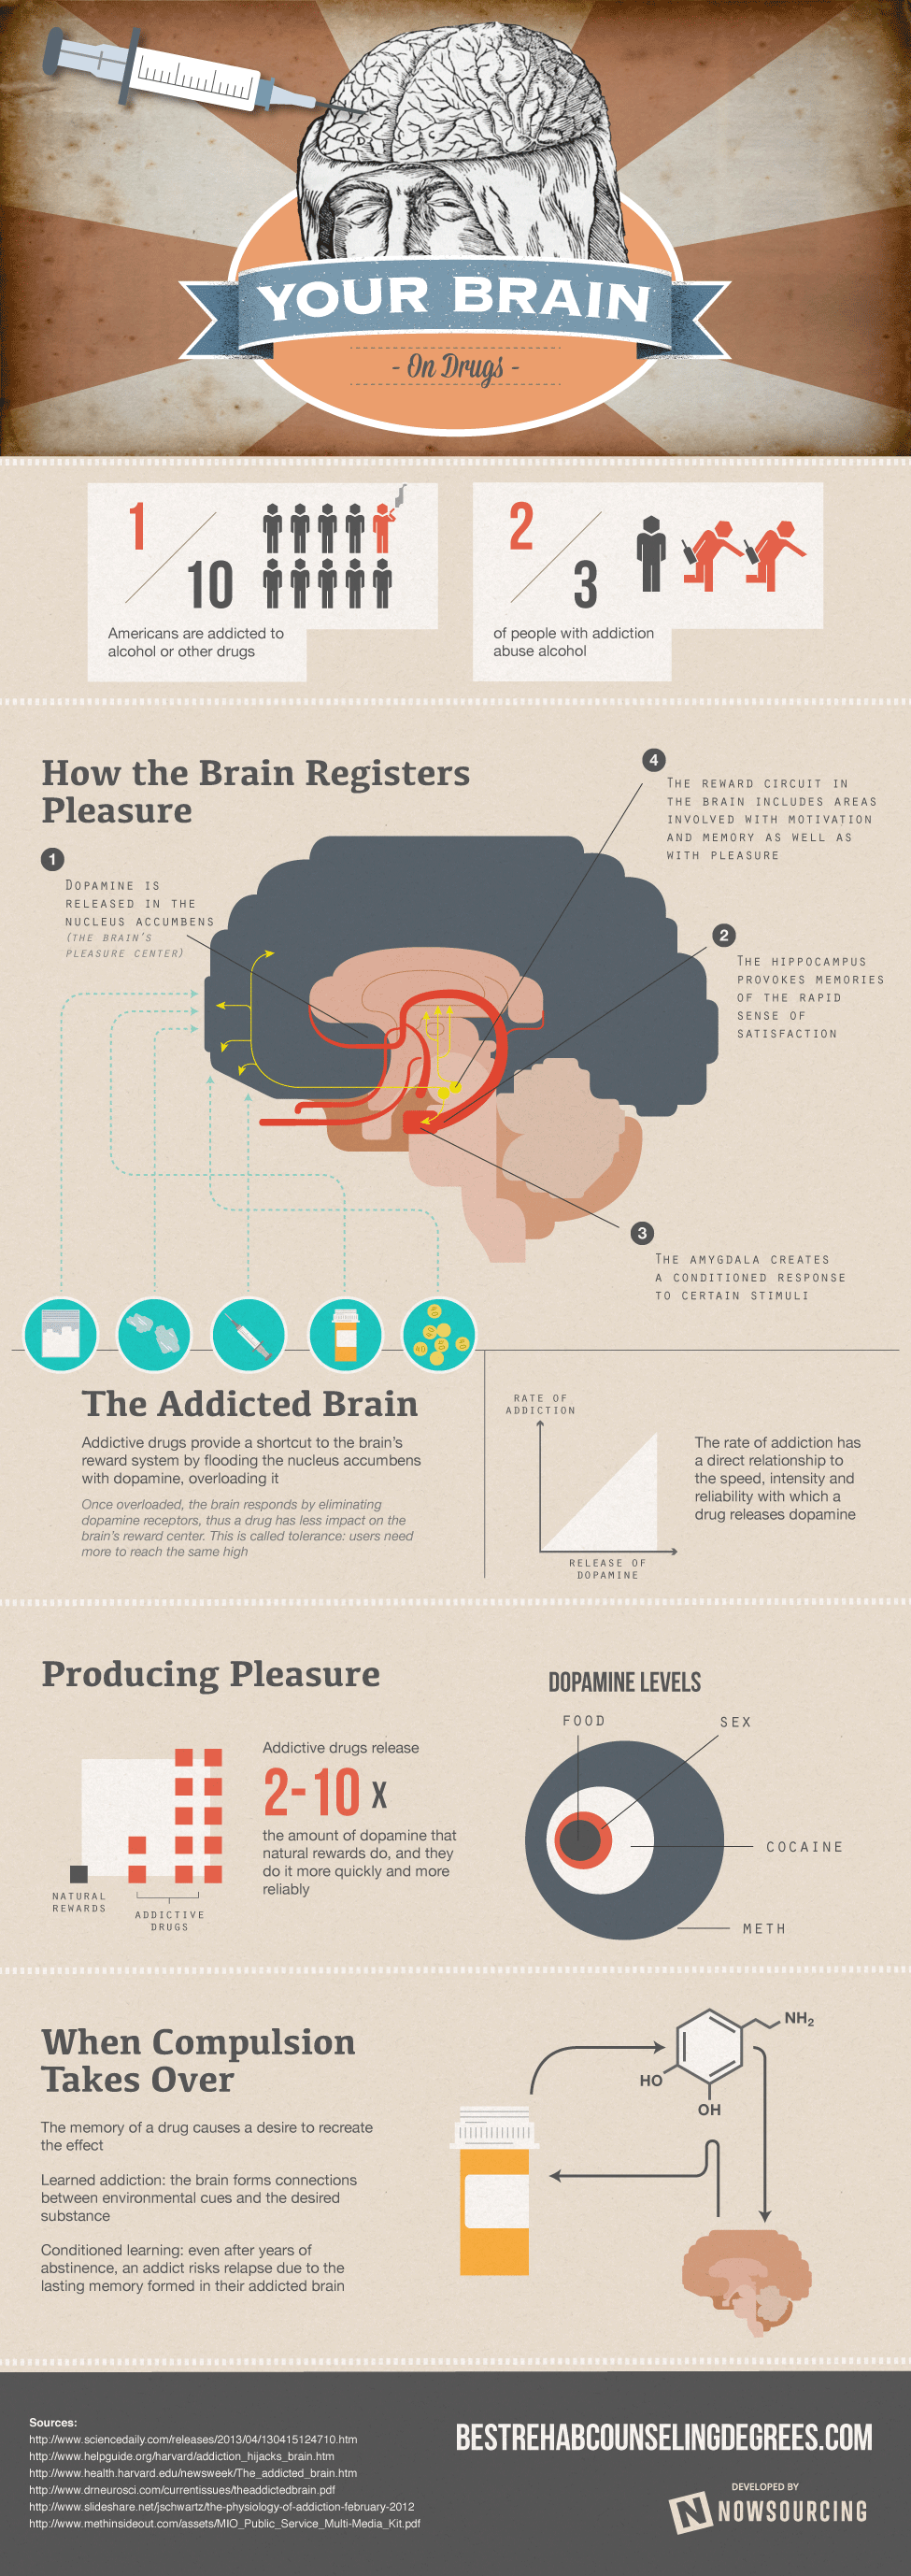 Your Brain On Drugs